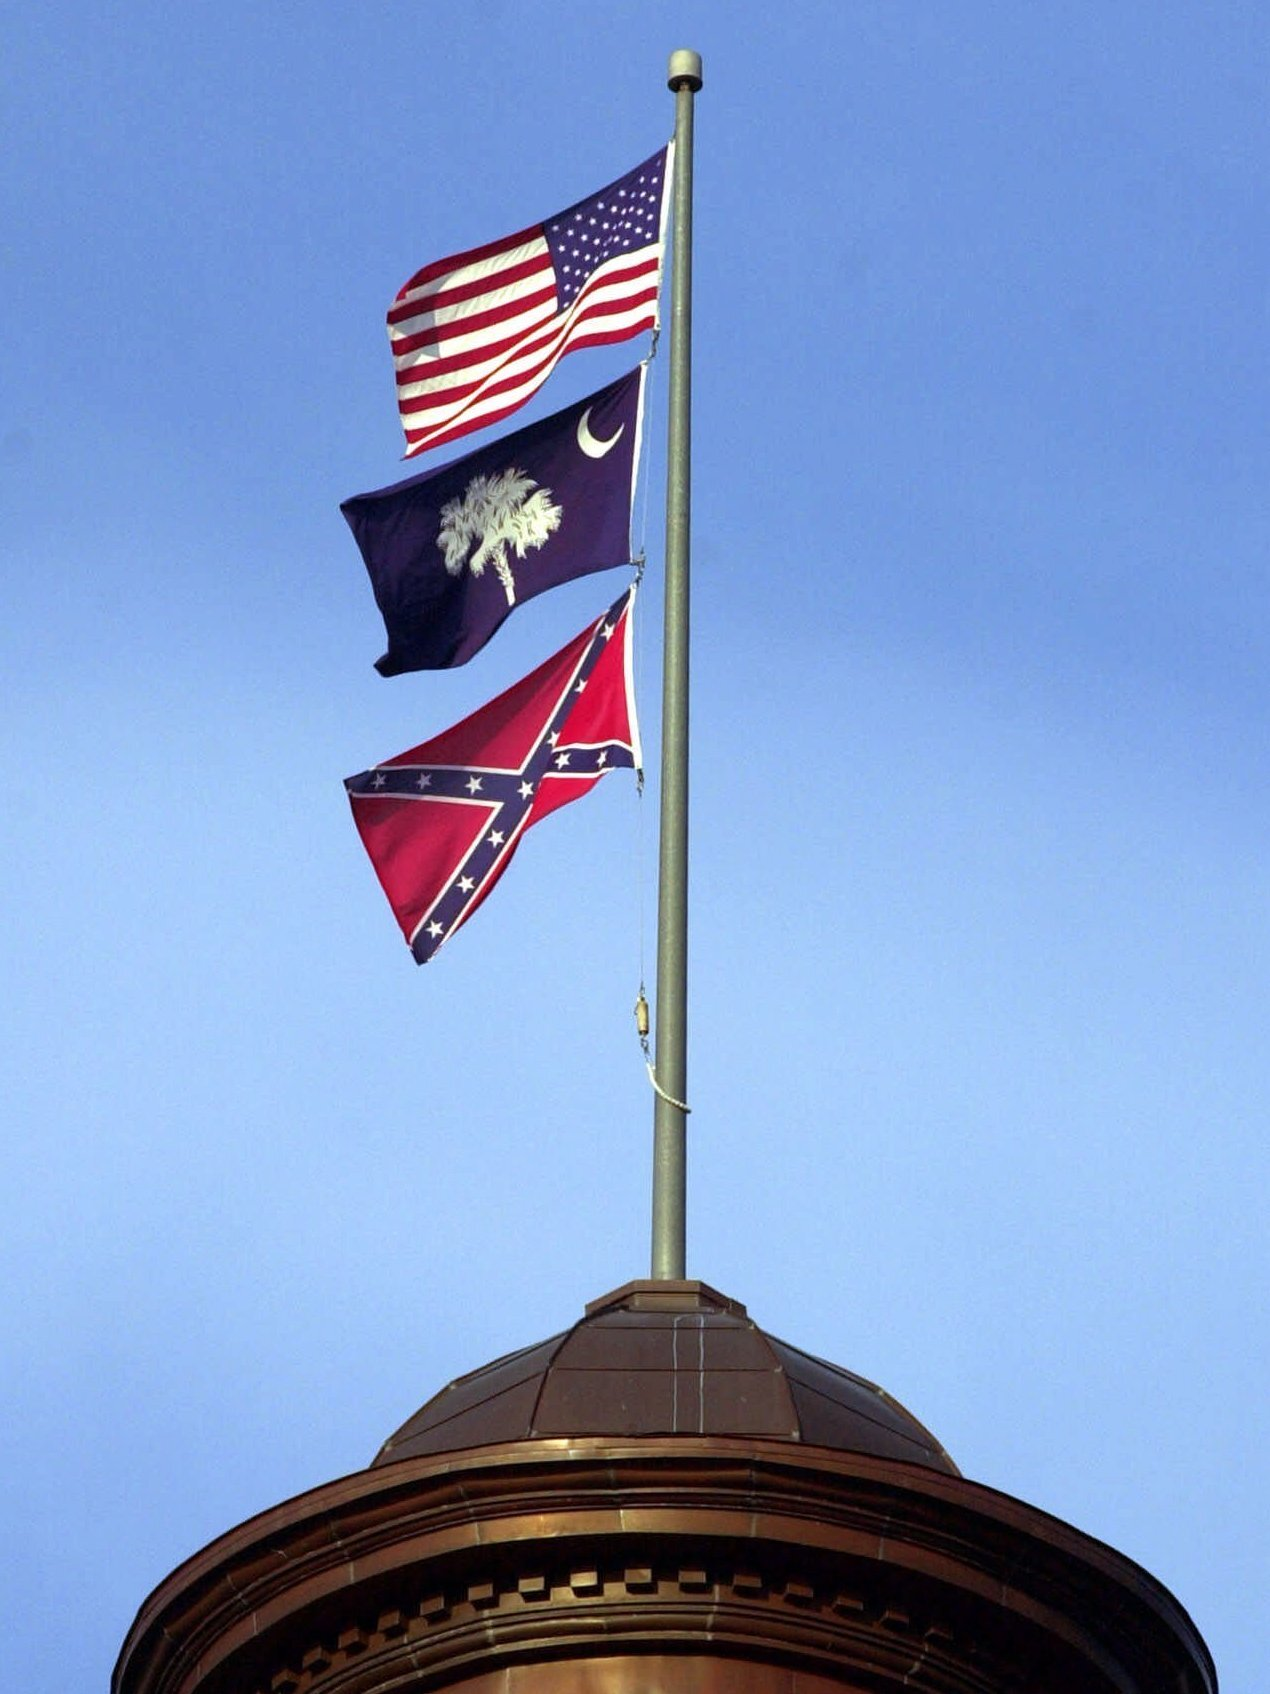 The Confederate Flag Flies On Dome Of Statehouse In Columbia SC 2000 Eric Draper Associated Press Hide Caption